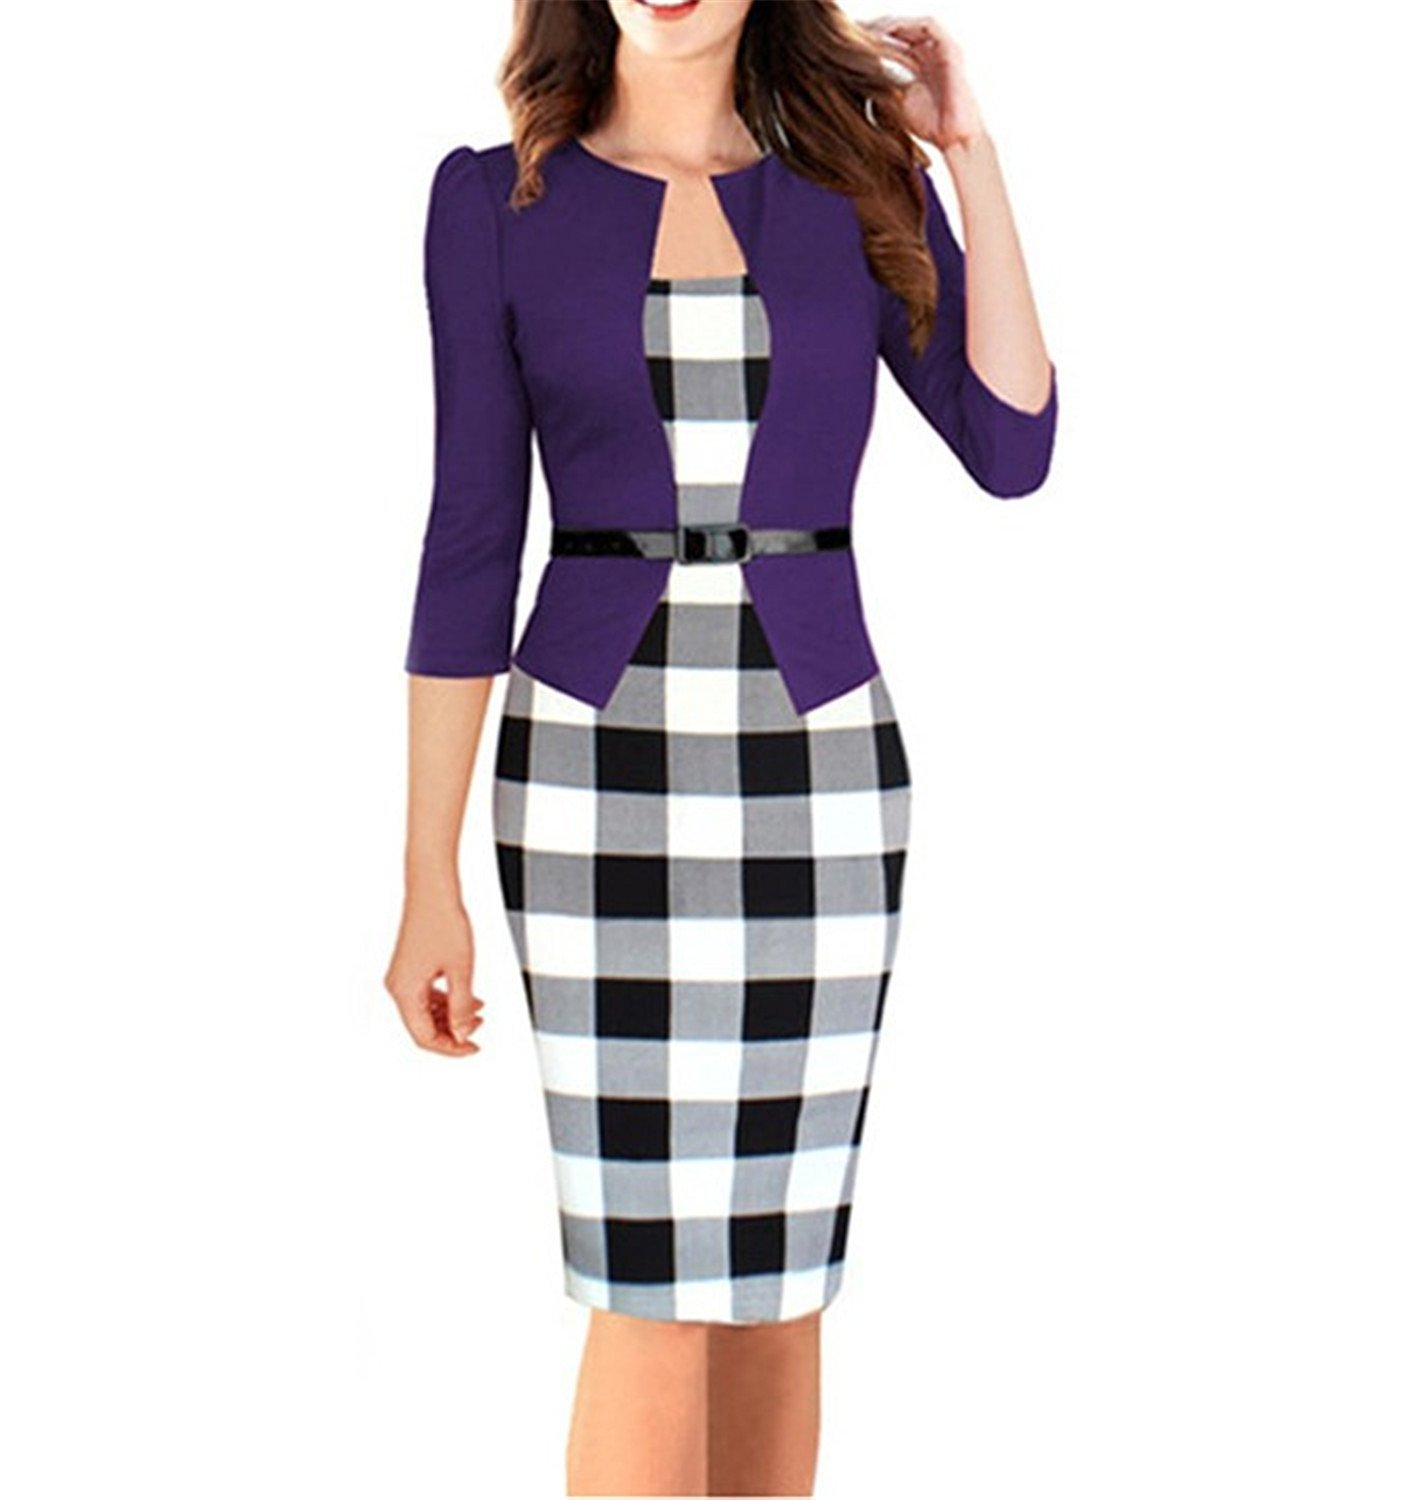 Toping Fine Womens Elegant Three Quarter Sleeve Cotton Blends Patchwork with Sashes Pencil Office Dress Suits PurpleMedium